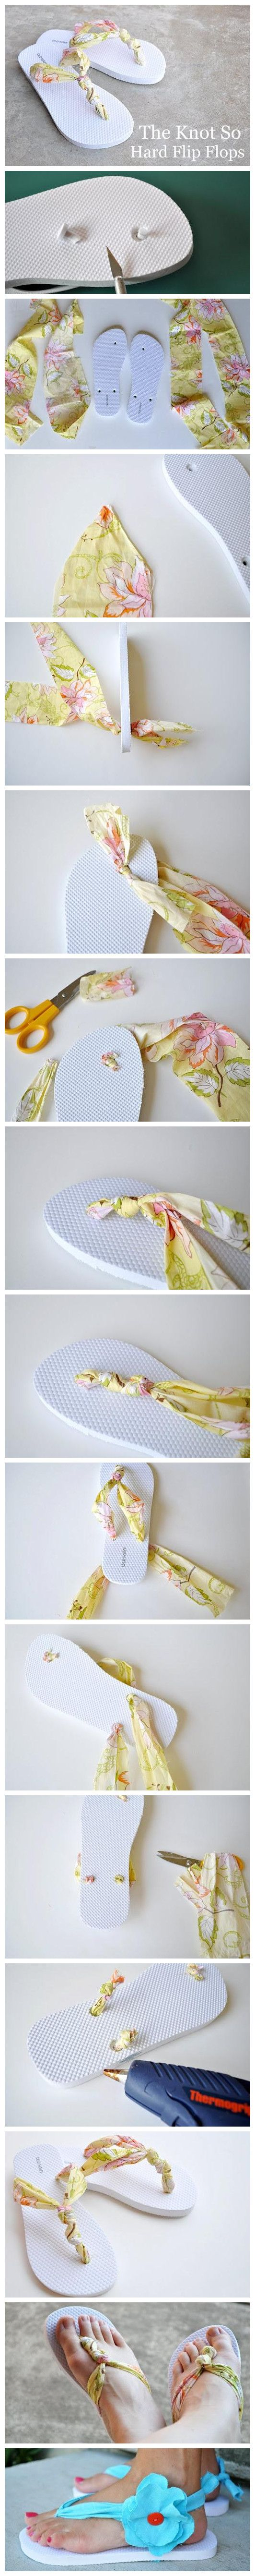 How to make knotted flip-flops - picture tutorial